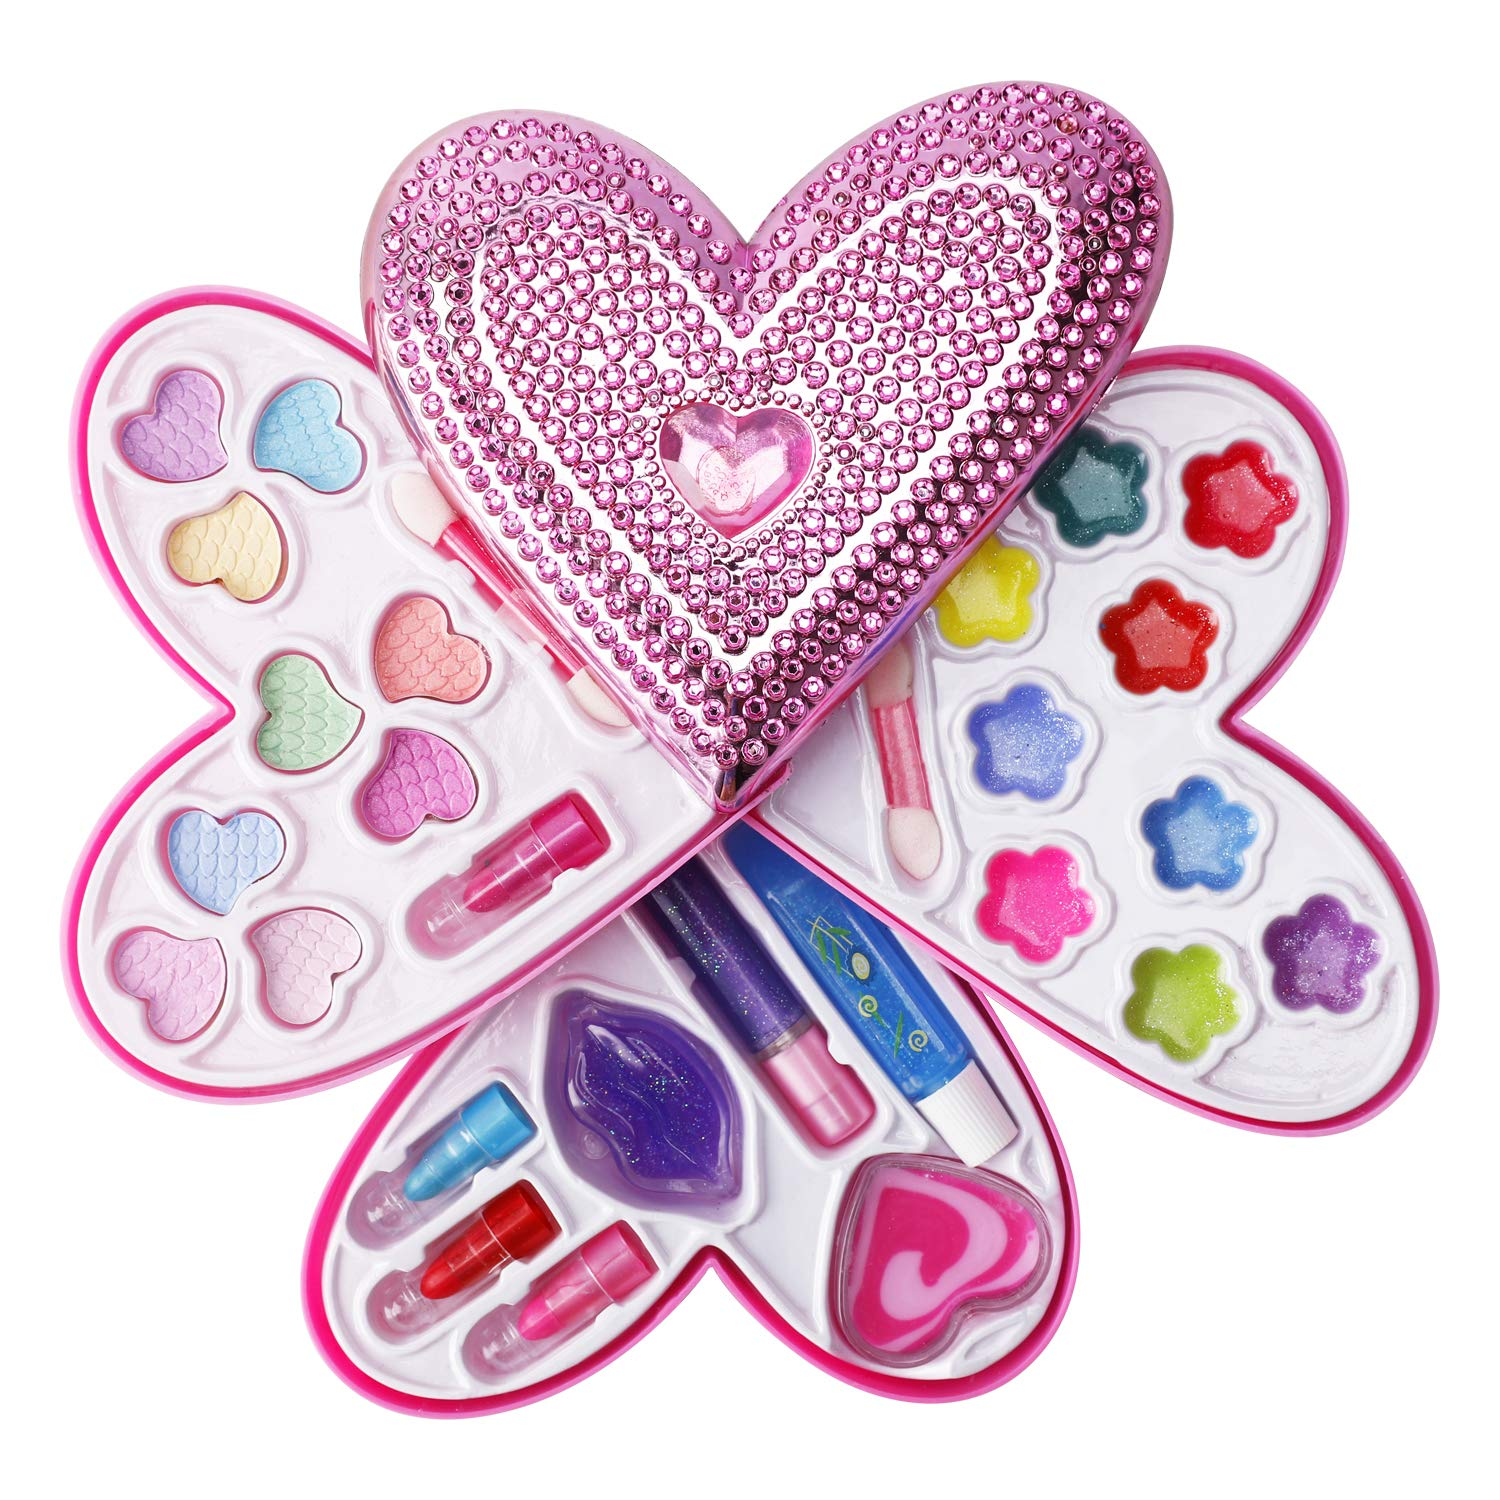 Liberty Imports Petite Girls Heart Shaped Cosmetics Play Set - Fashion Makeup Kit for Kids by Liberty Imports